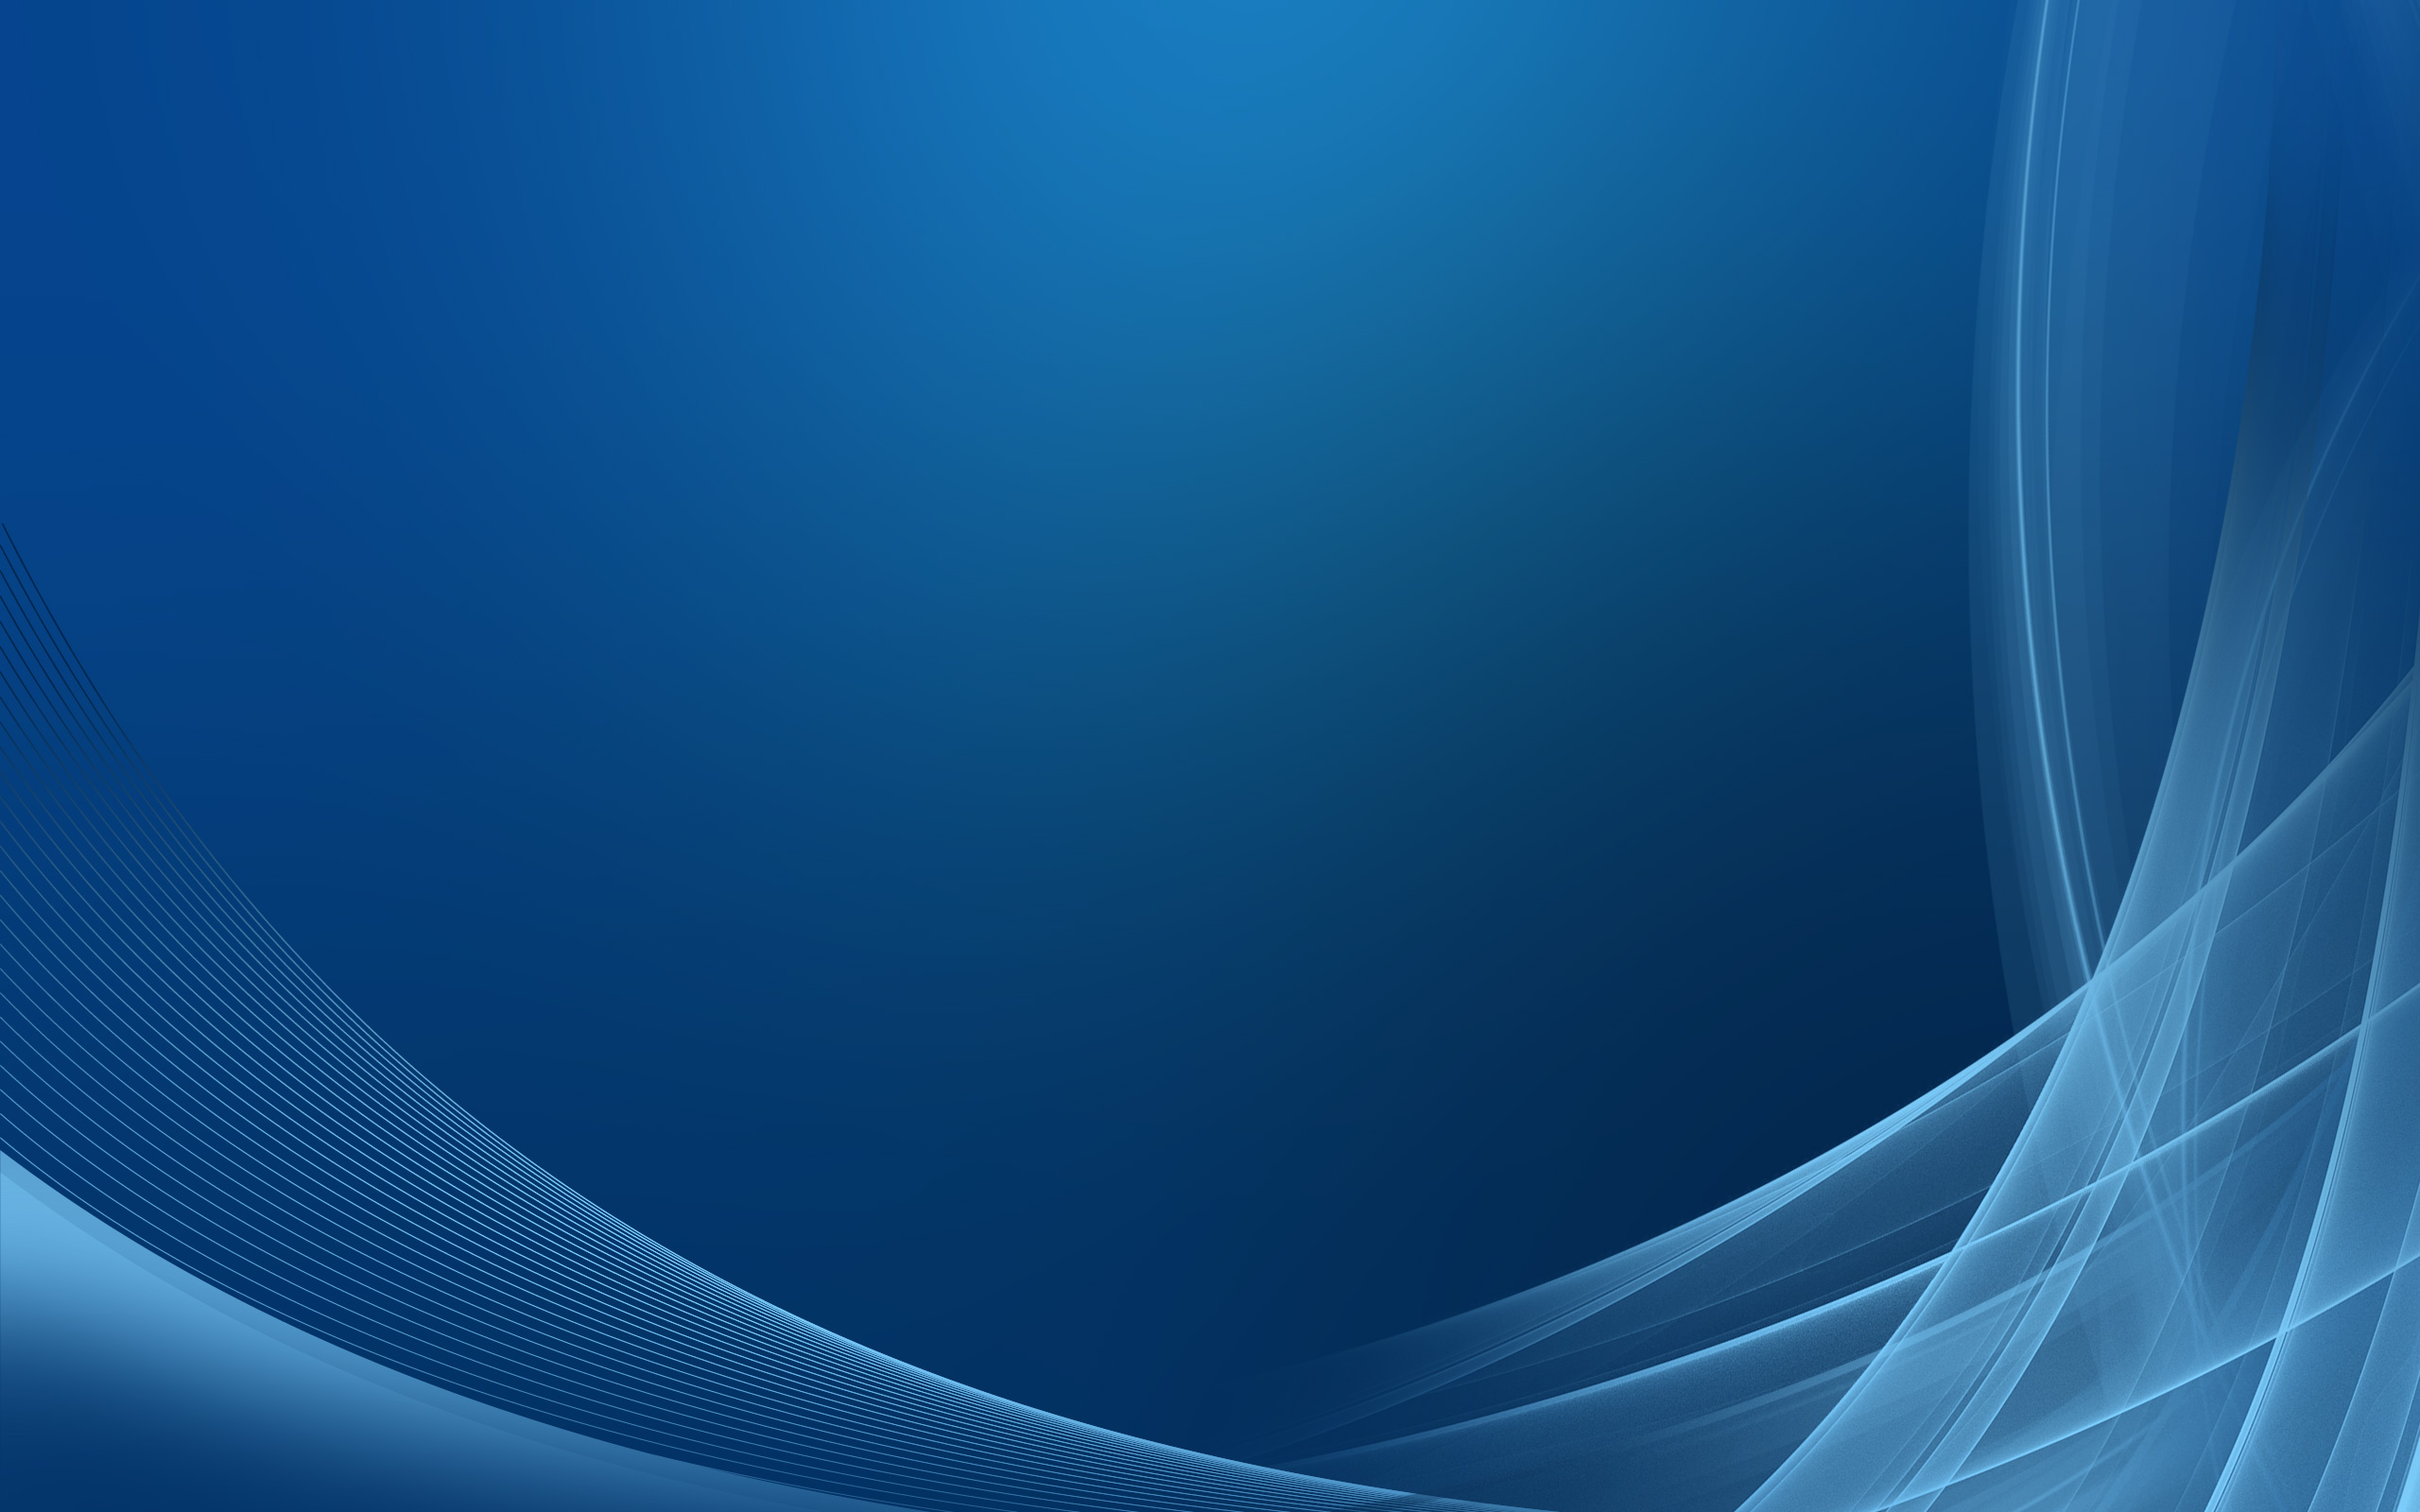 Hd Abstract Blue Background: Blue-abstract-hd-7-wallpaper-background-hd